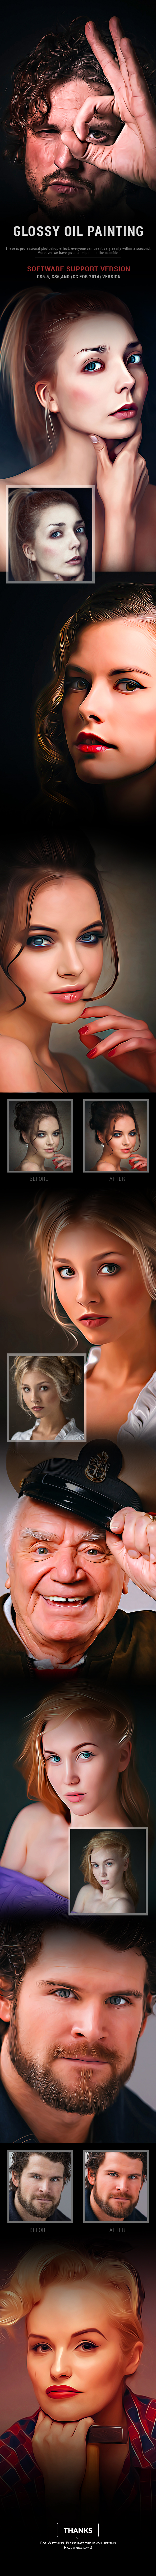 Glossy Oil Painting - Photo Effects Actions